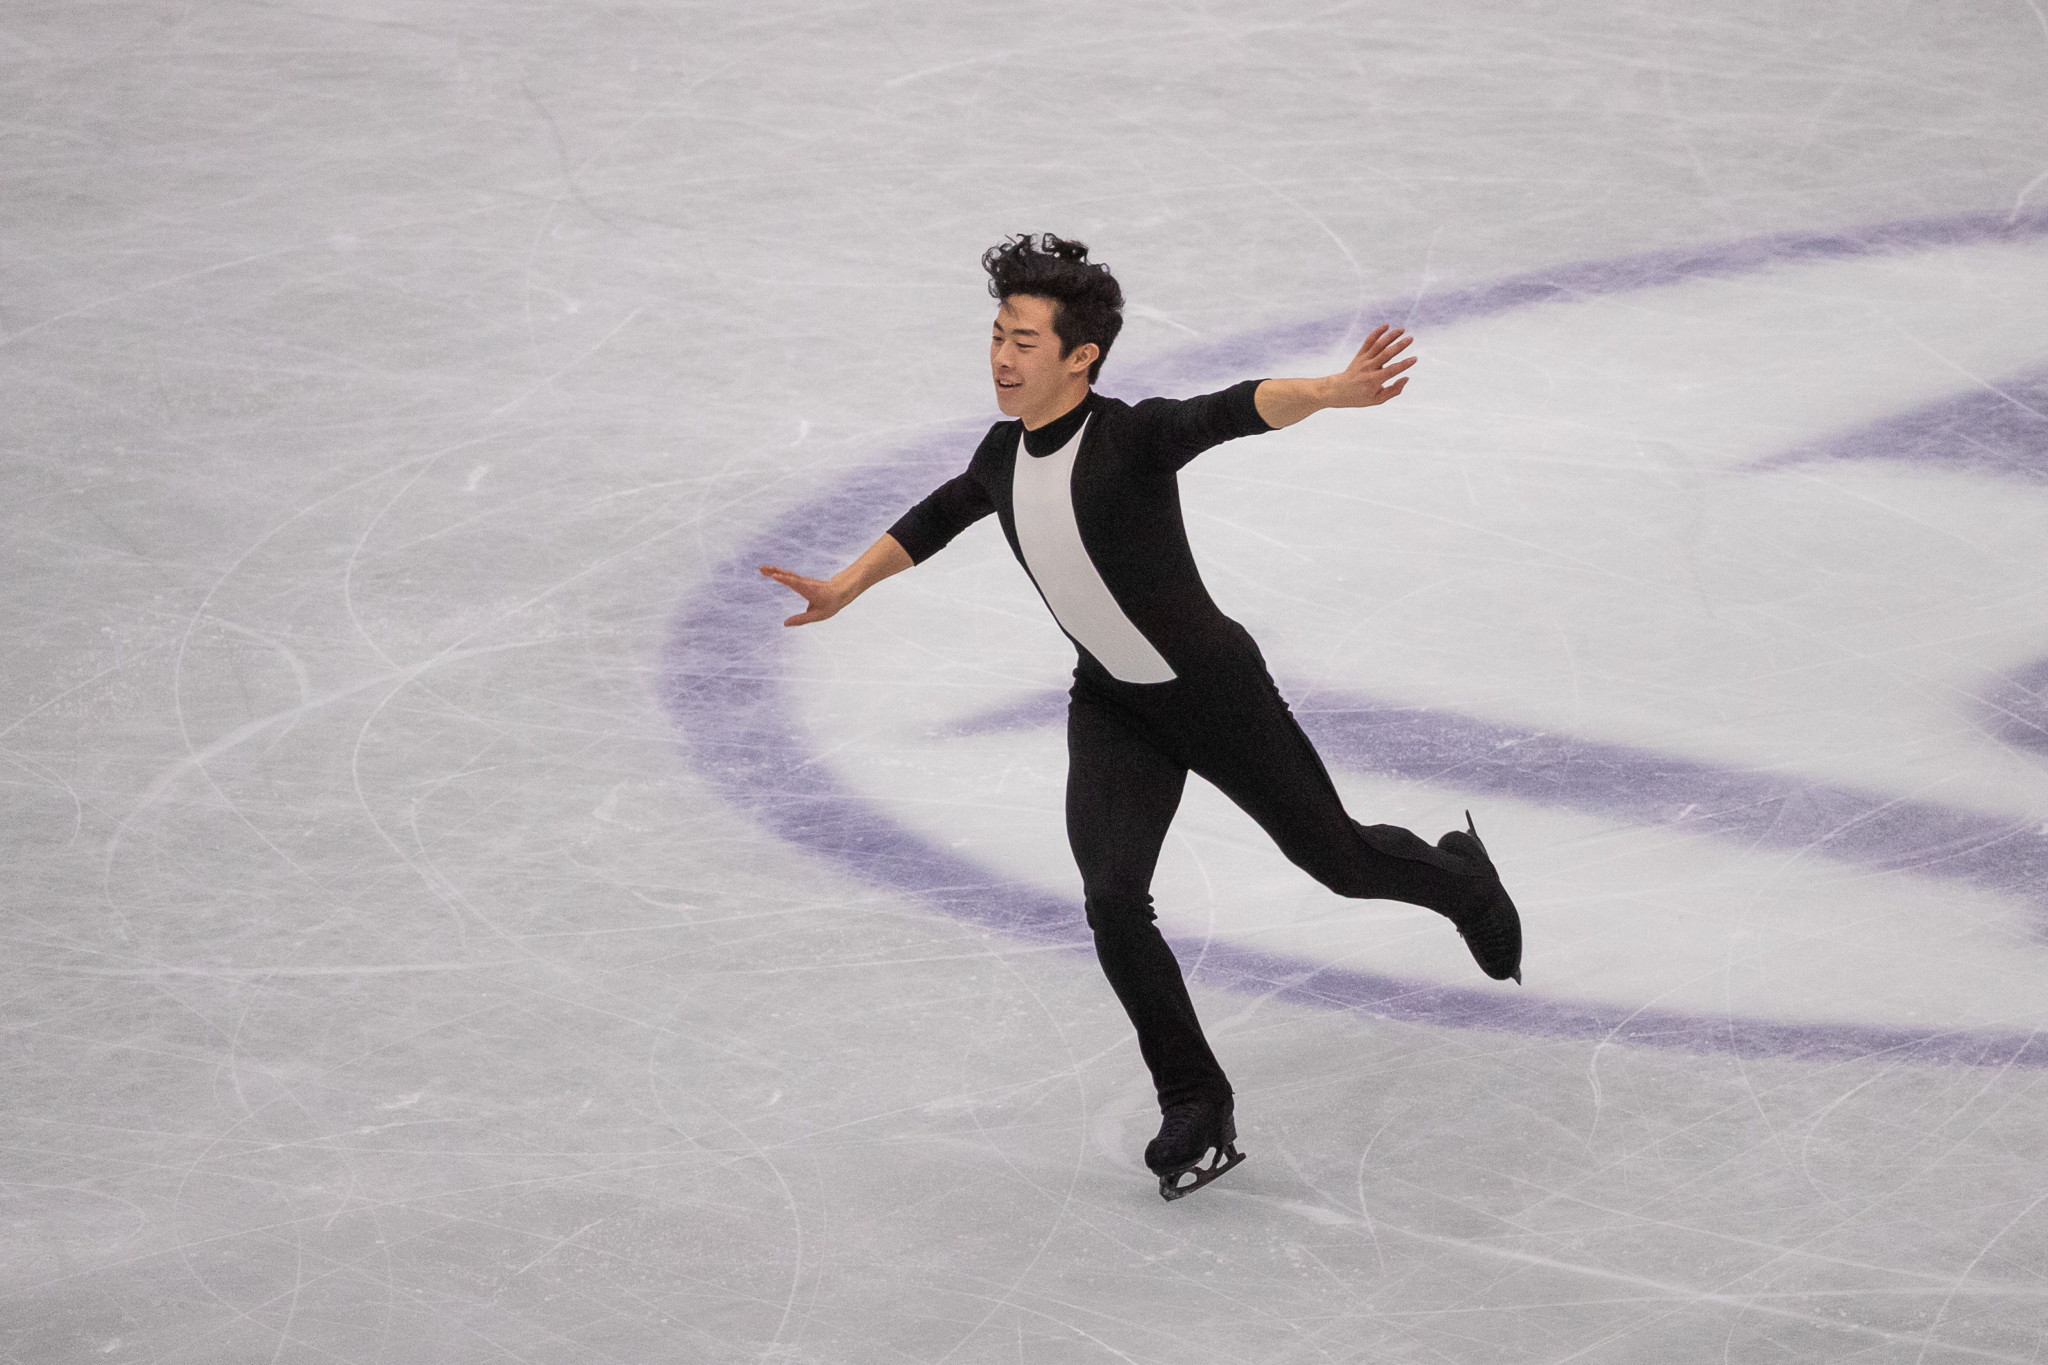 Nathan Chen was given the men's USOC Best of March Team USA Award ©Getty Images